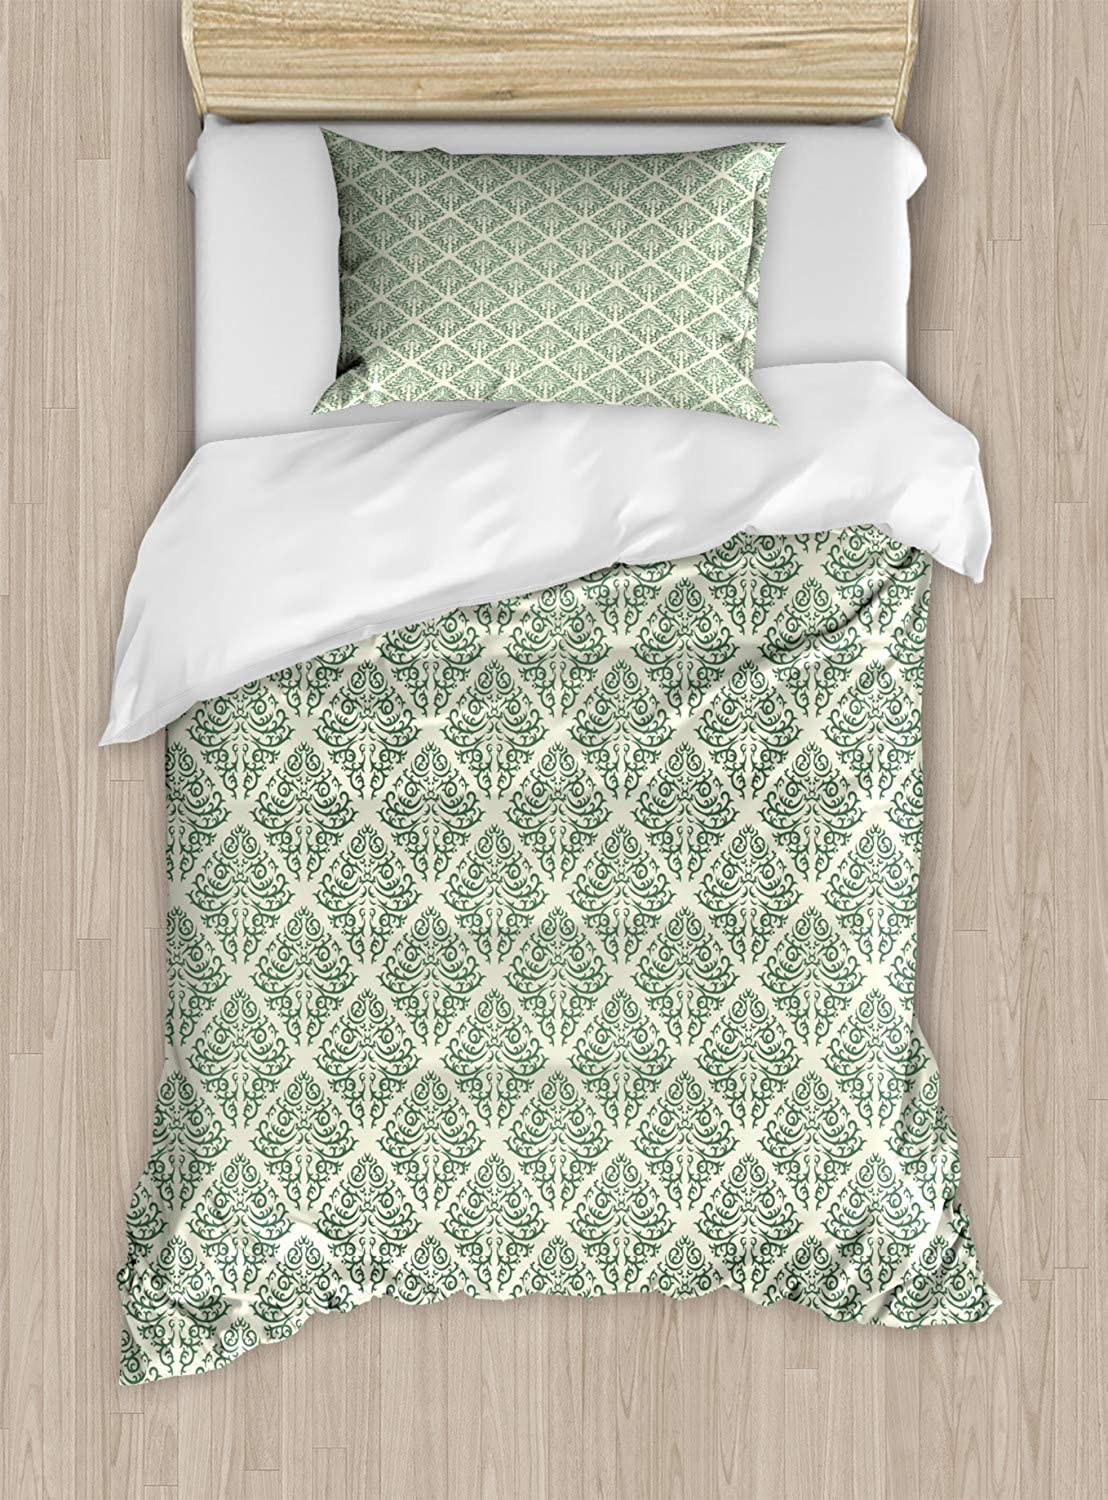 VpinkLVHOME Abstract Green Duvet Cover Set Twin Size Continuous Vintage Design Victorian Damask Swirls Pattern,2 Piece Bedding Set with with 1 Pillowcase for Kids Bedding,Jade Green and Pastel Green